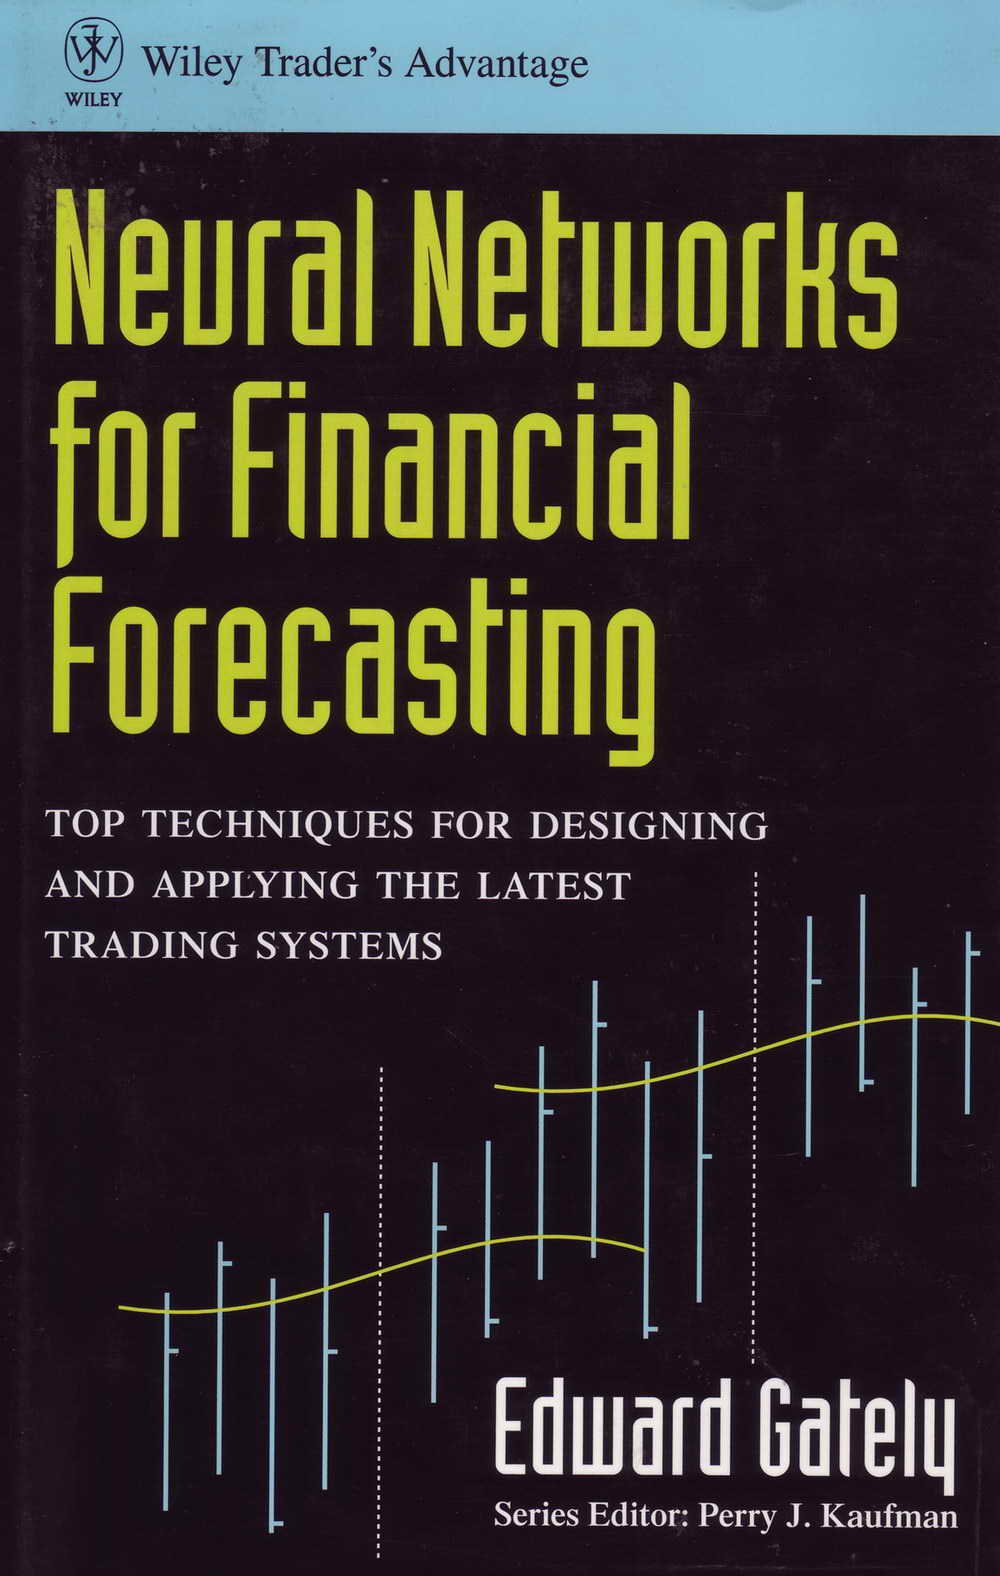 Neural Networks for Financial Forecasting - Π  Ν  Σάκκουλας